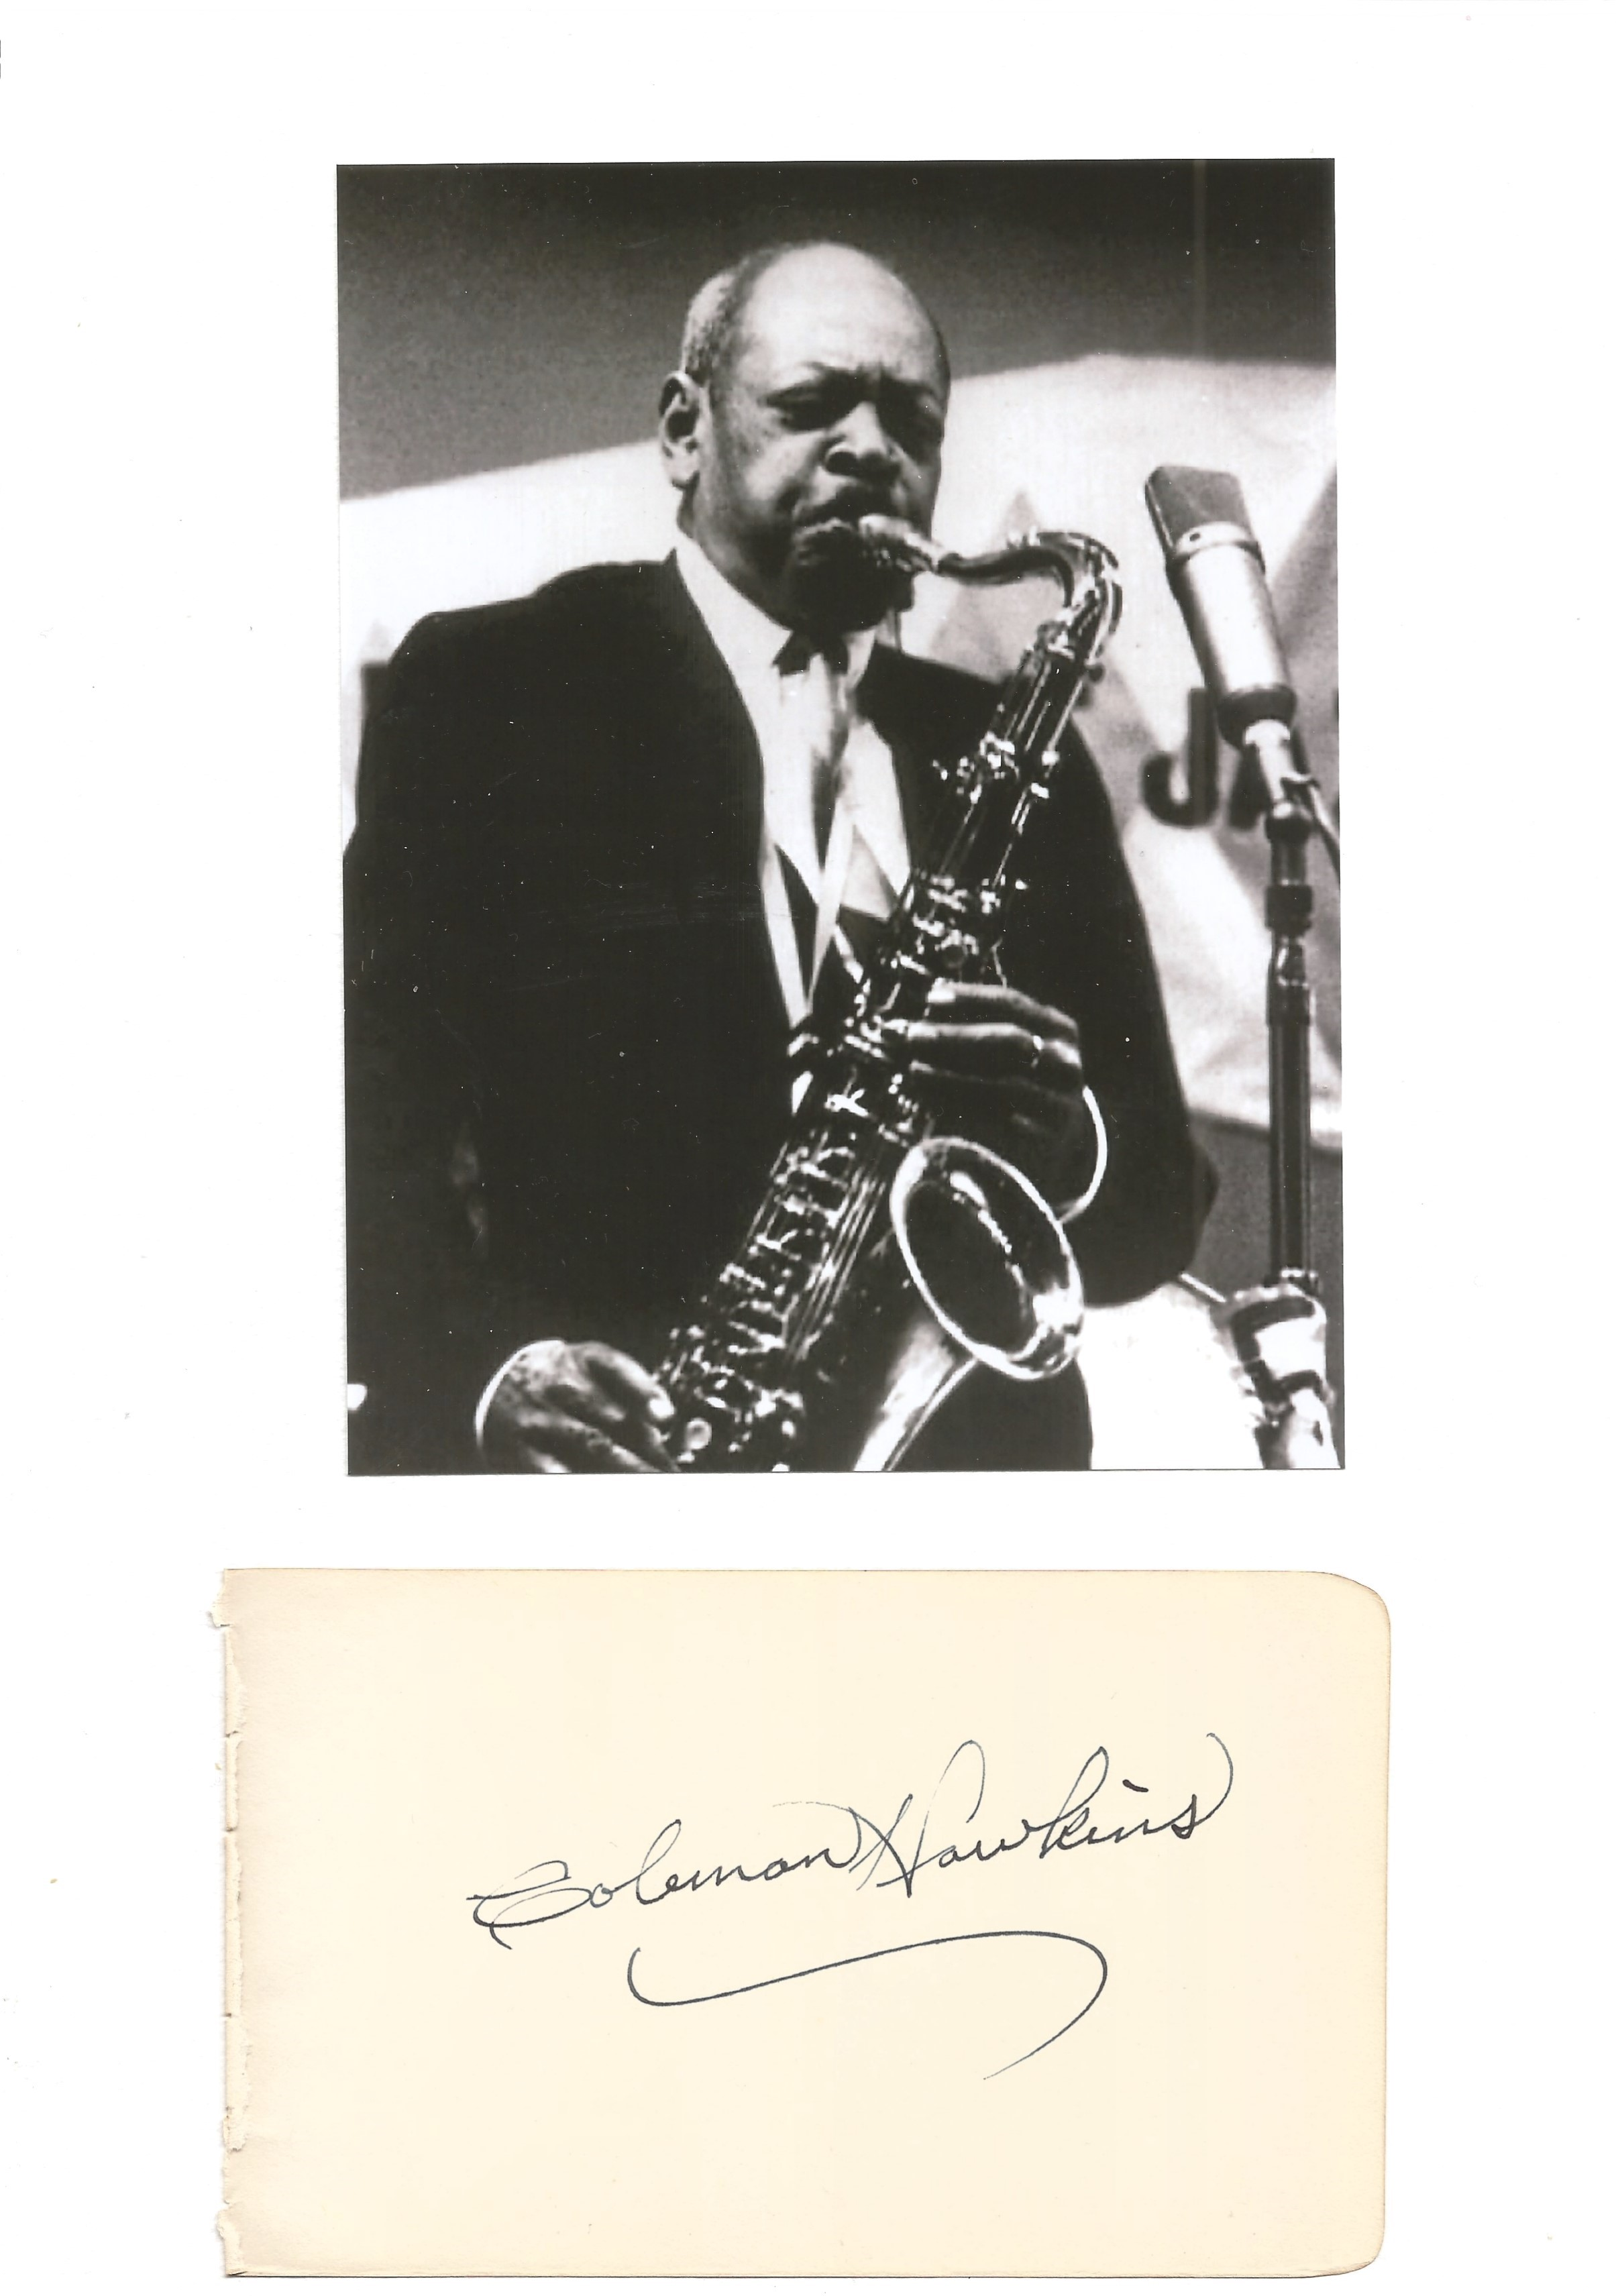 Music Coleman Hawkins signed rare autograph album page set on A4 page with b/w photo. Good